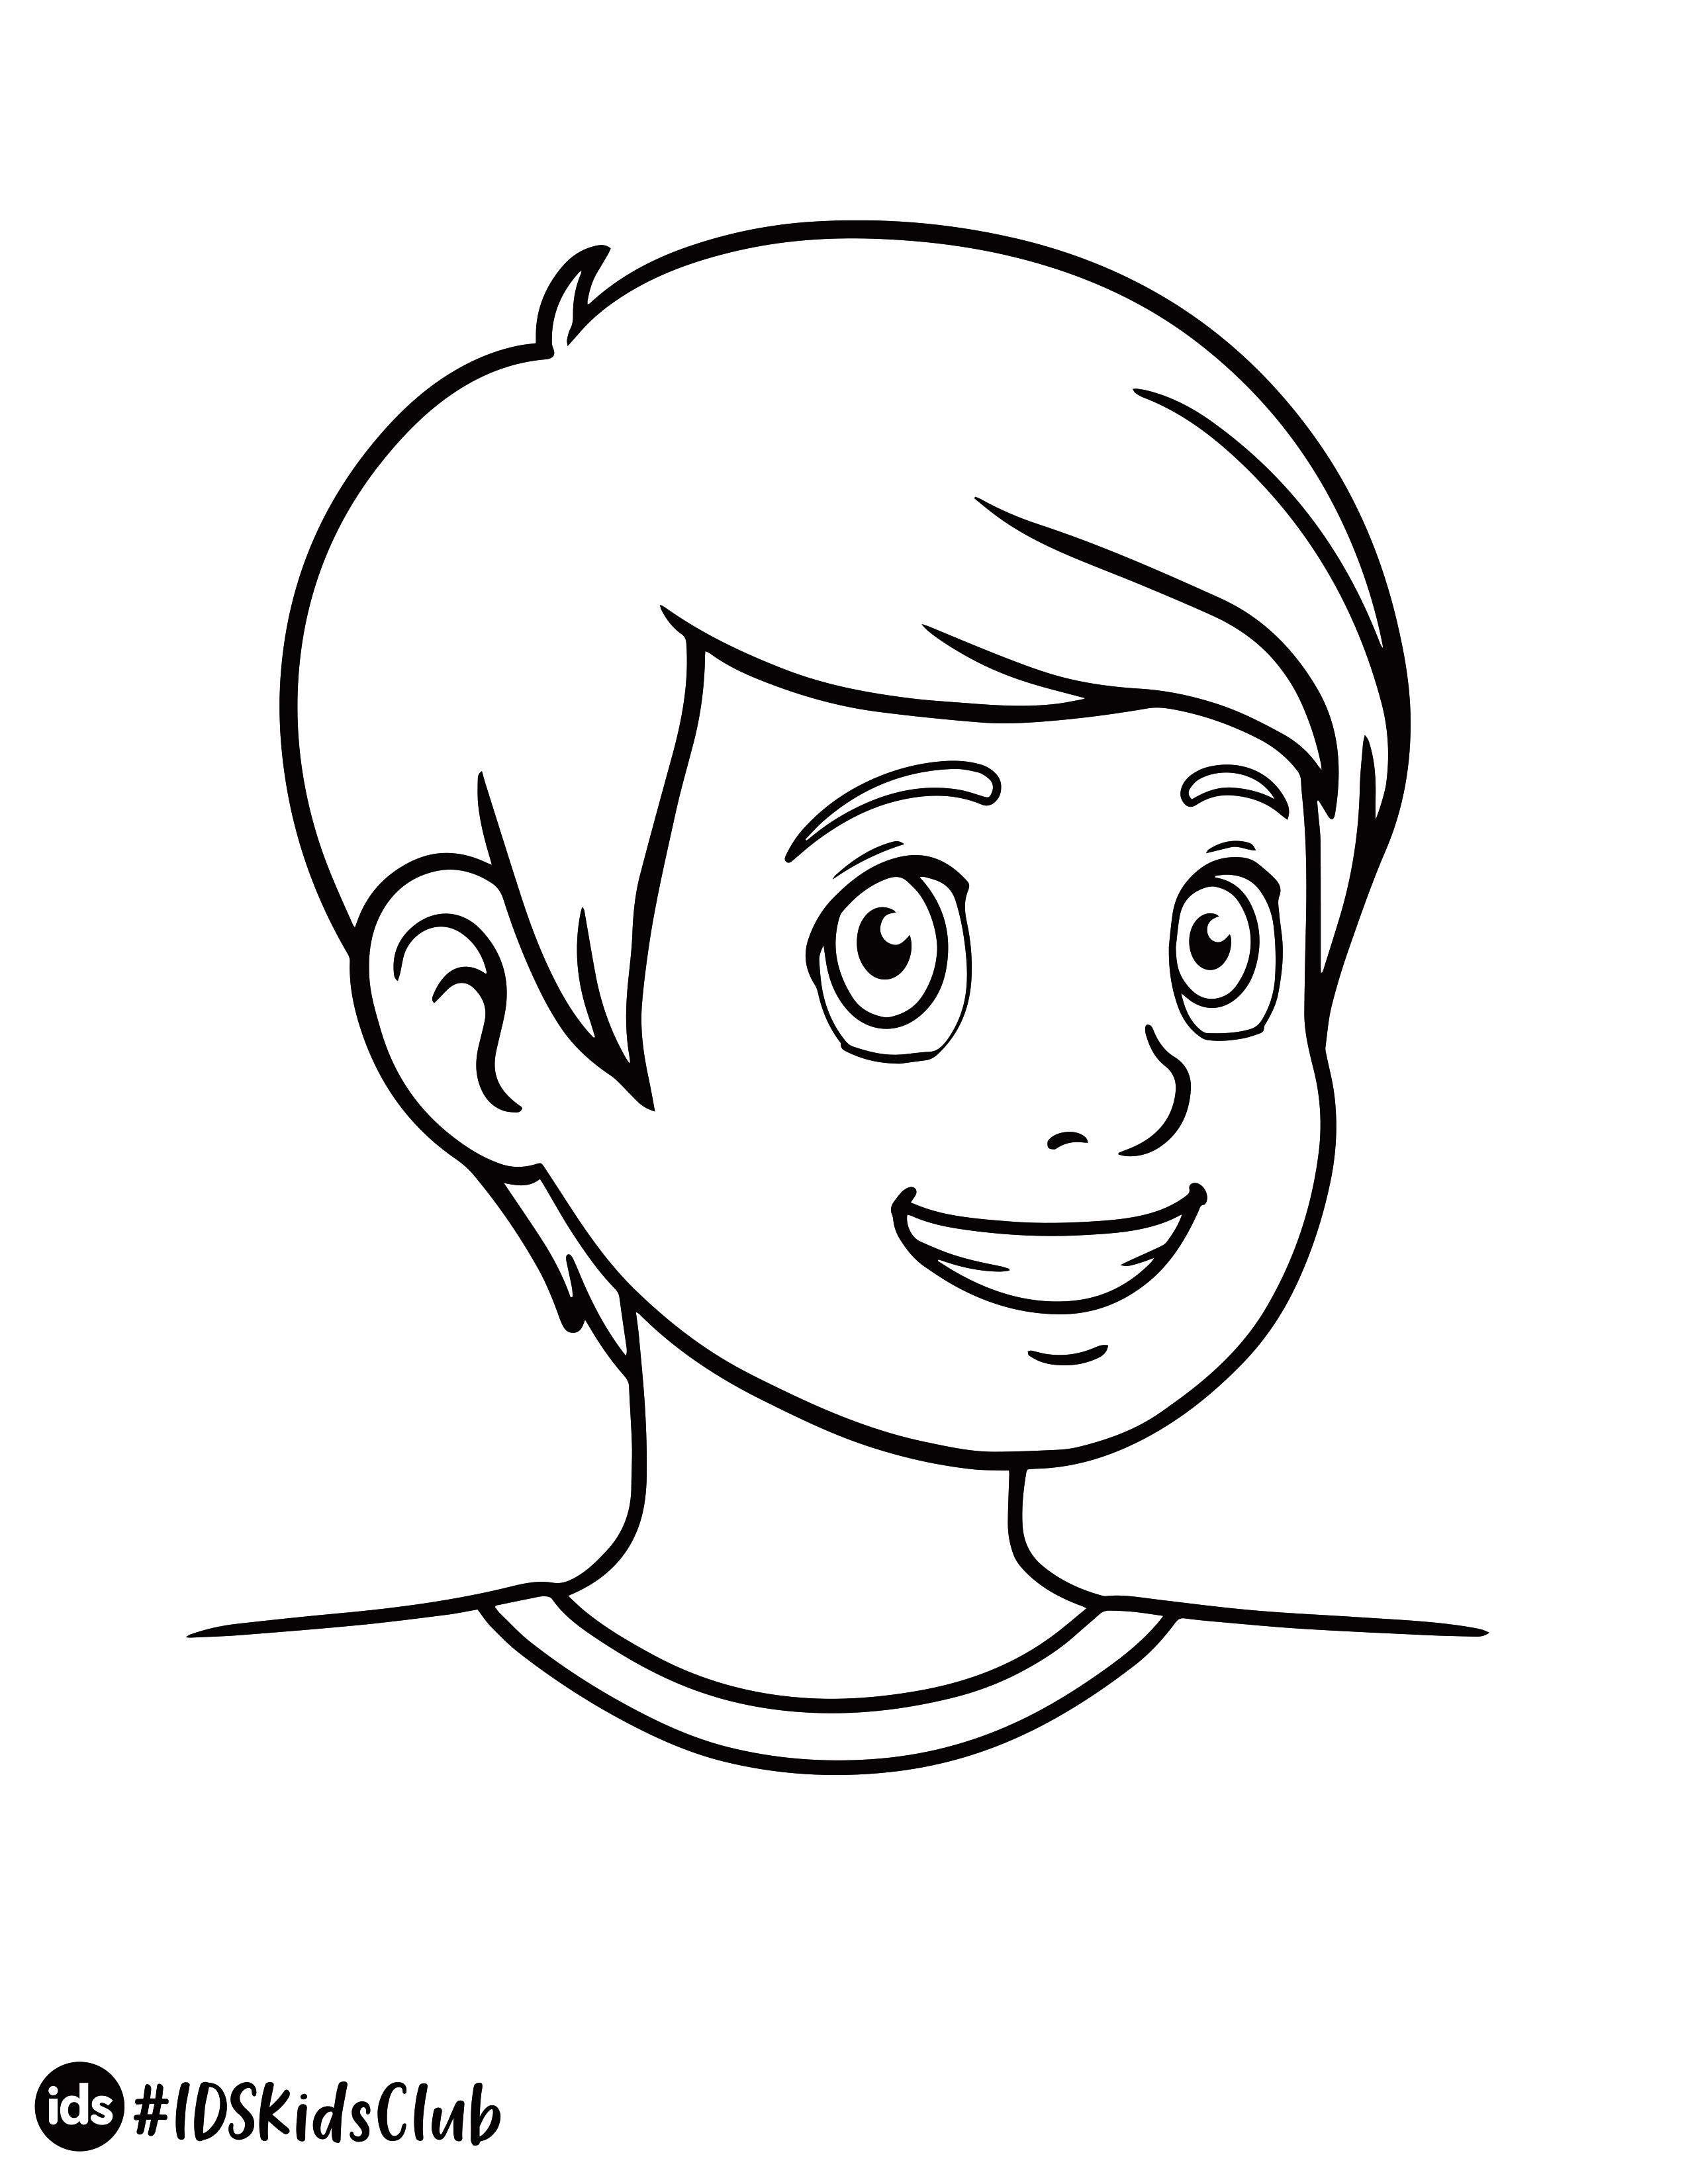 Ids Boy Coloring Page Coloring Pages Coloring Pages For Boys Drawing Activities